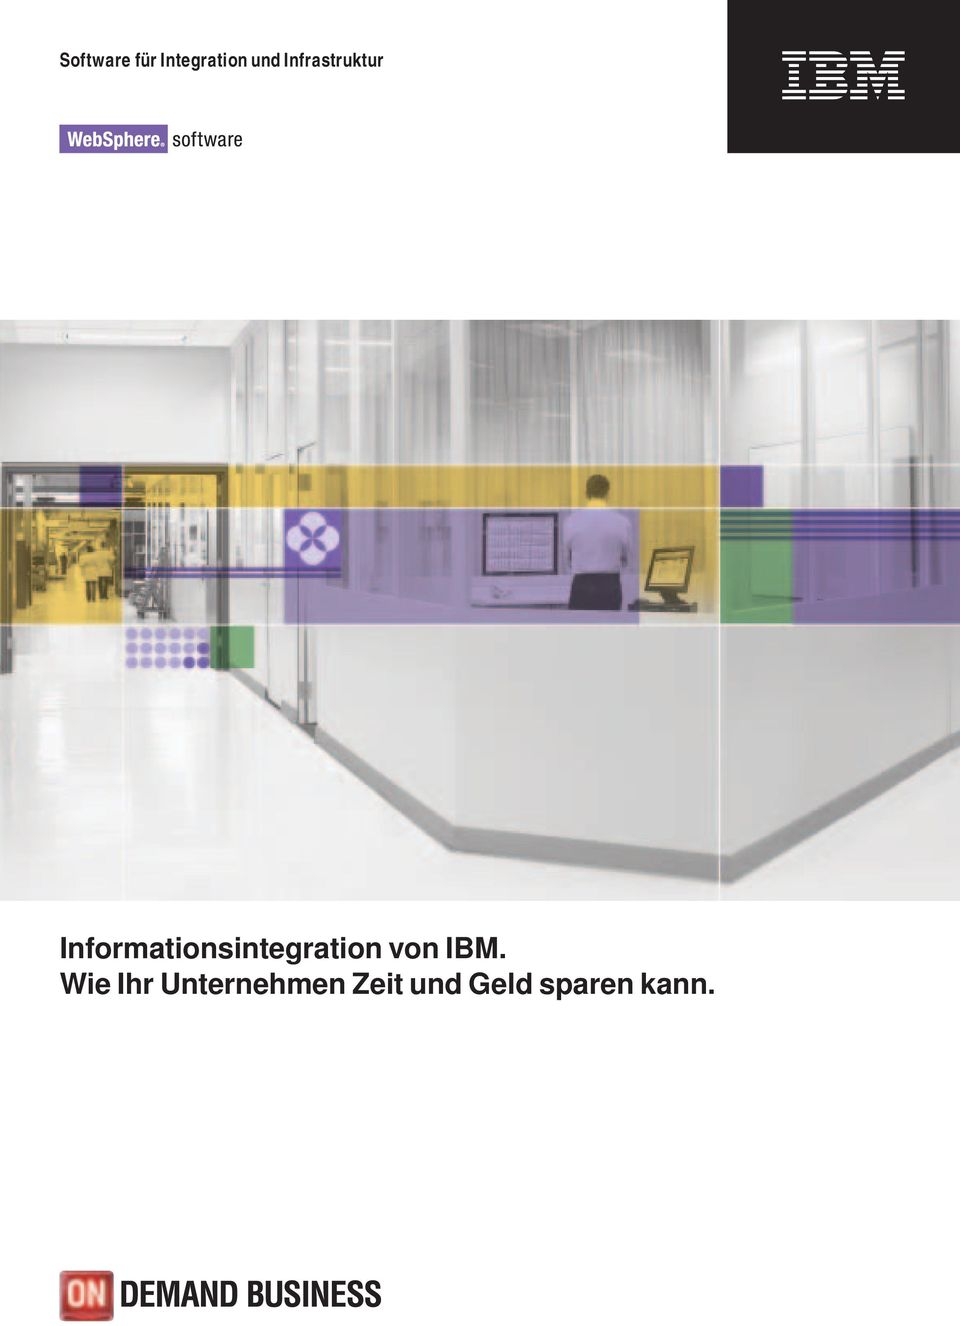 Informationsintegration von